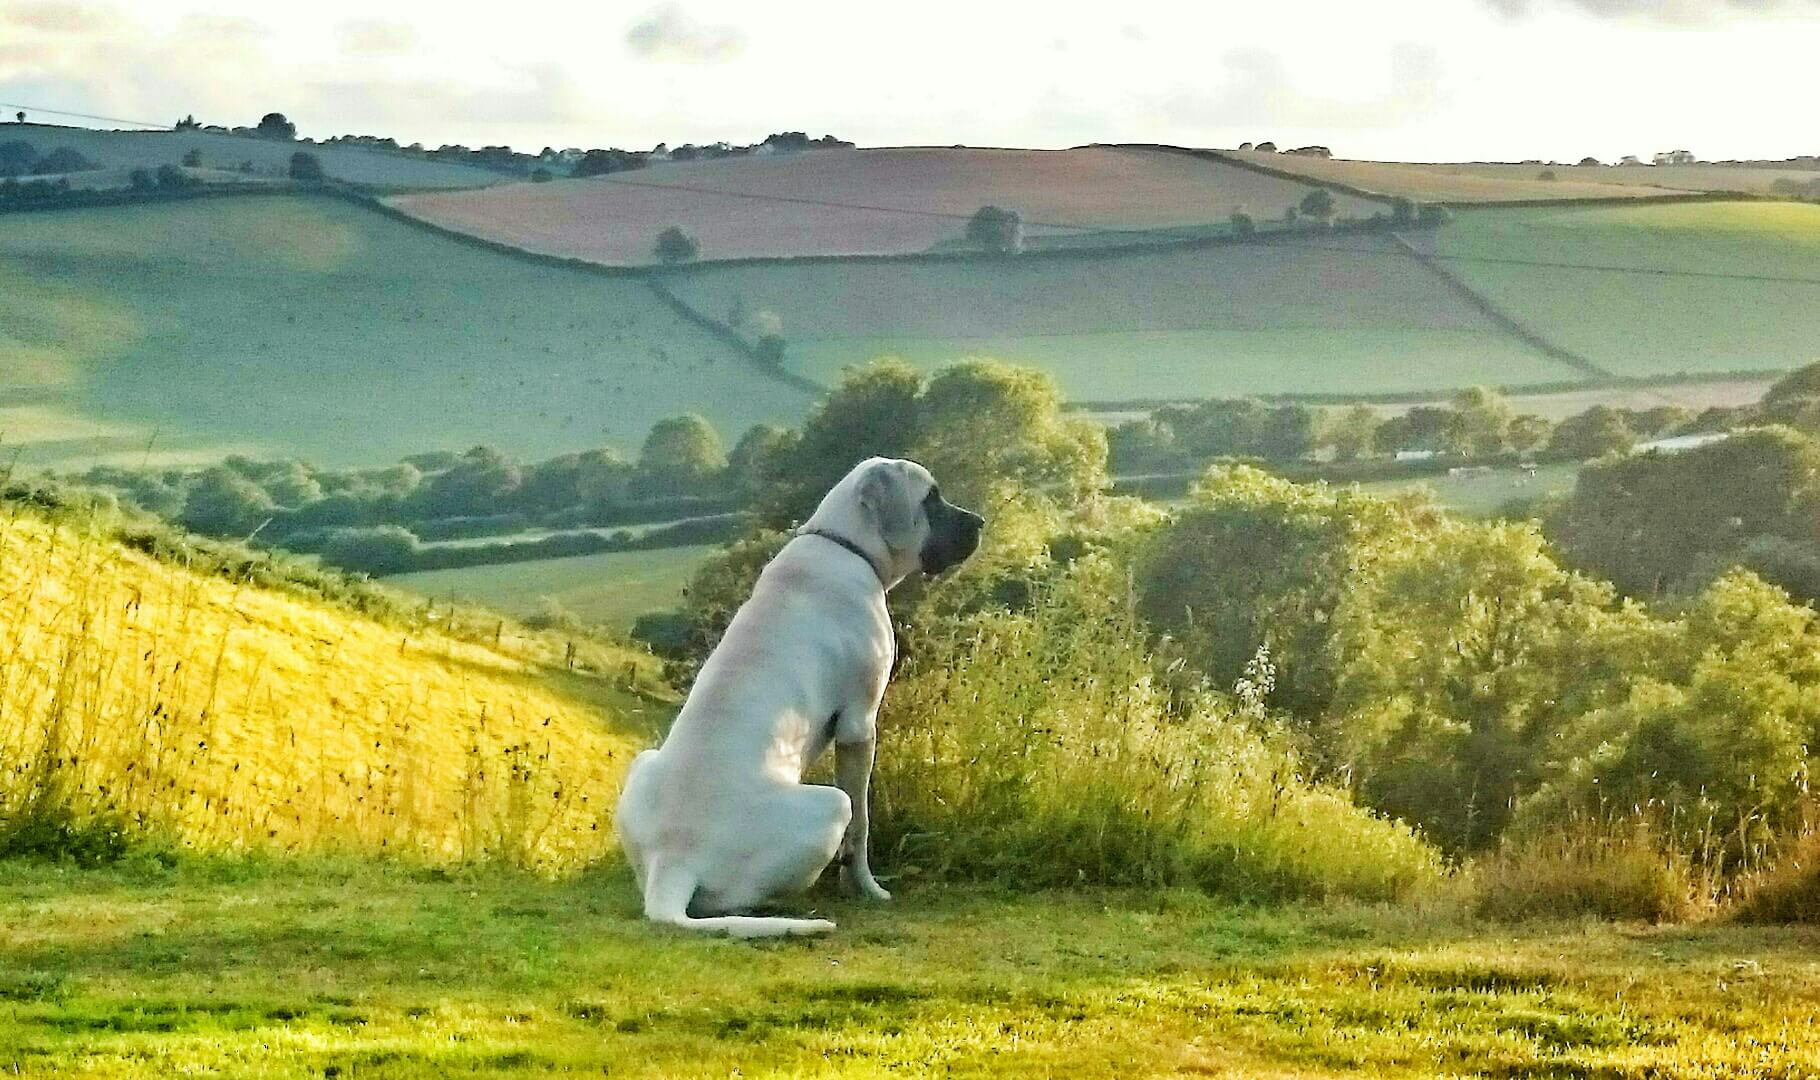 places to buy sofas in cornwall modular leather corner sofa uk dog friendly holiday cottages well behaved